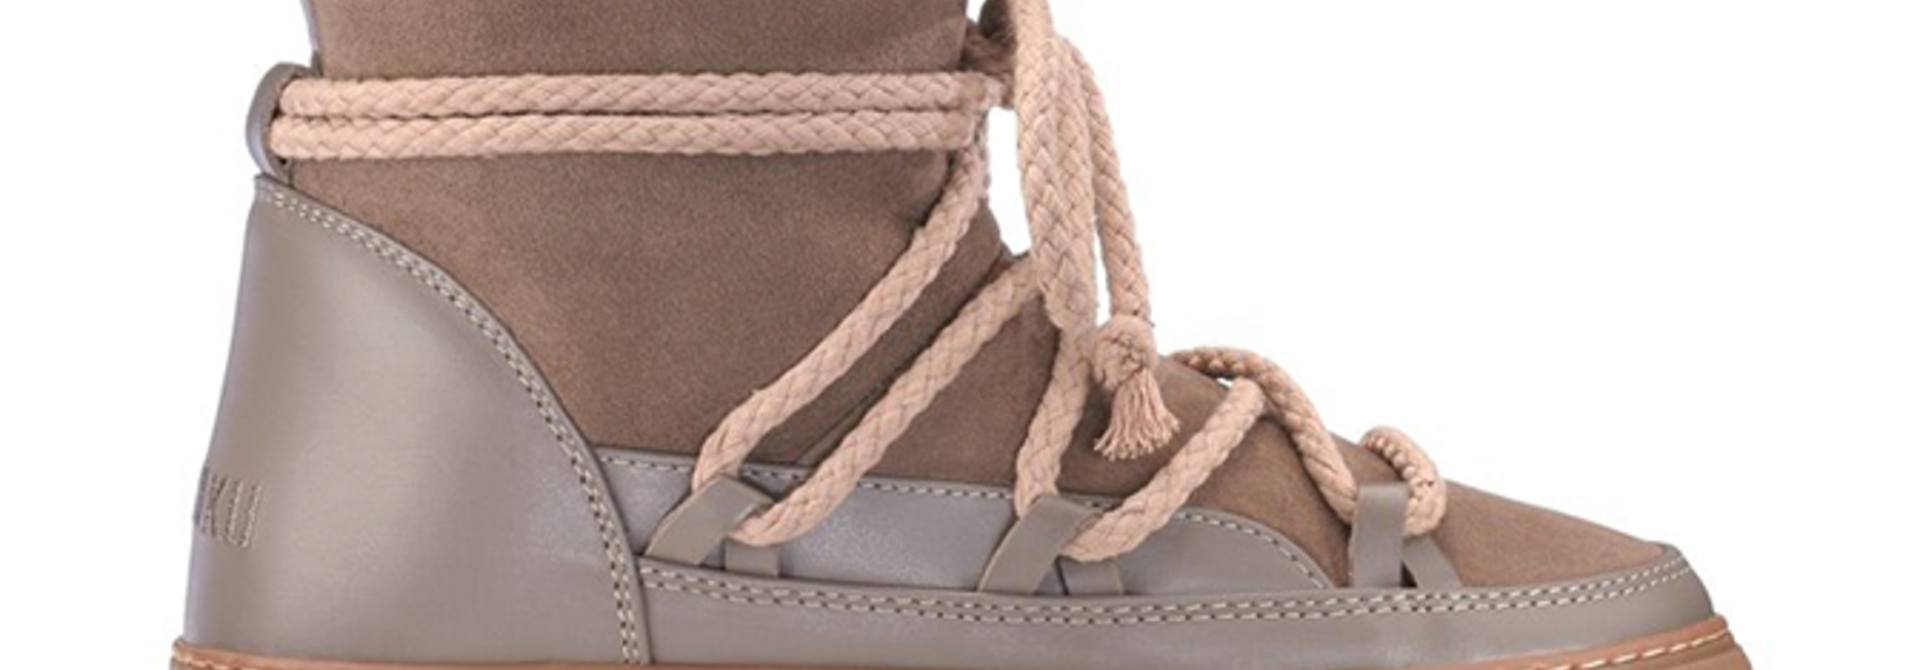 Boots Classic Taupe